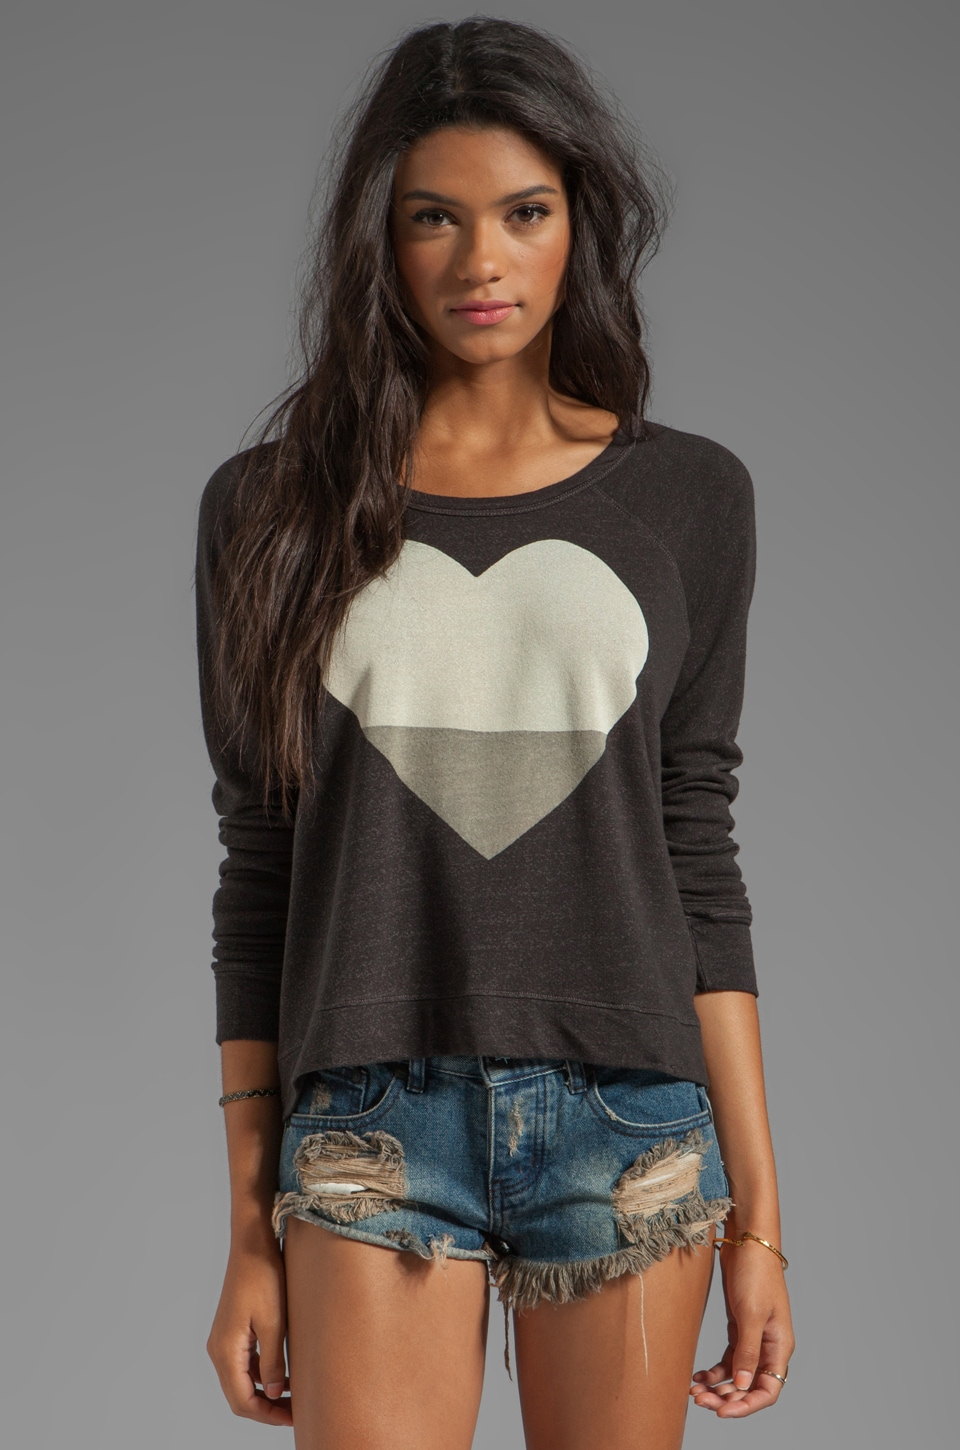 SUNDRY Heart Cropped Pullover in Old Black